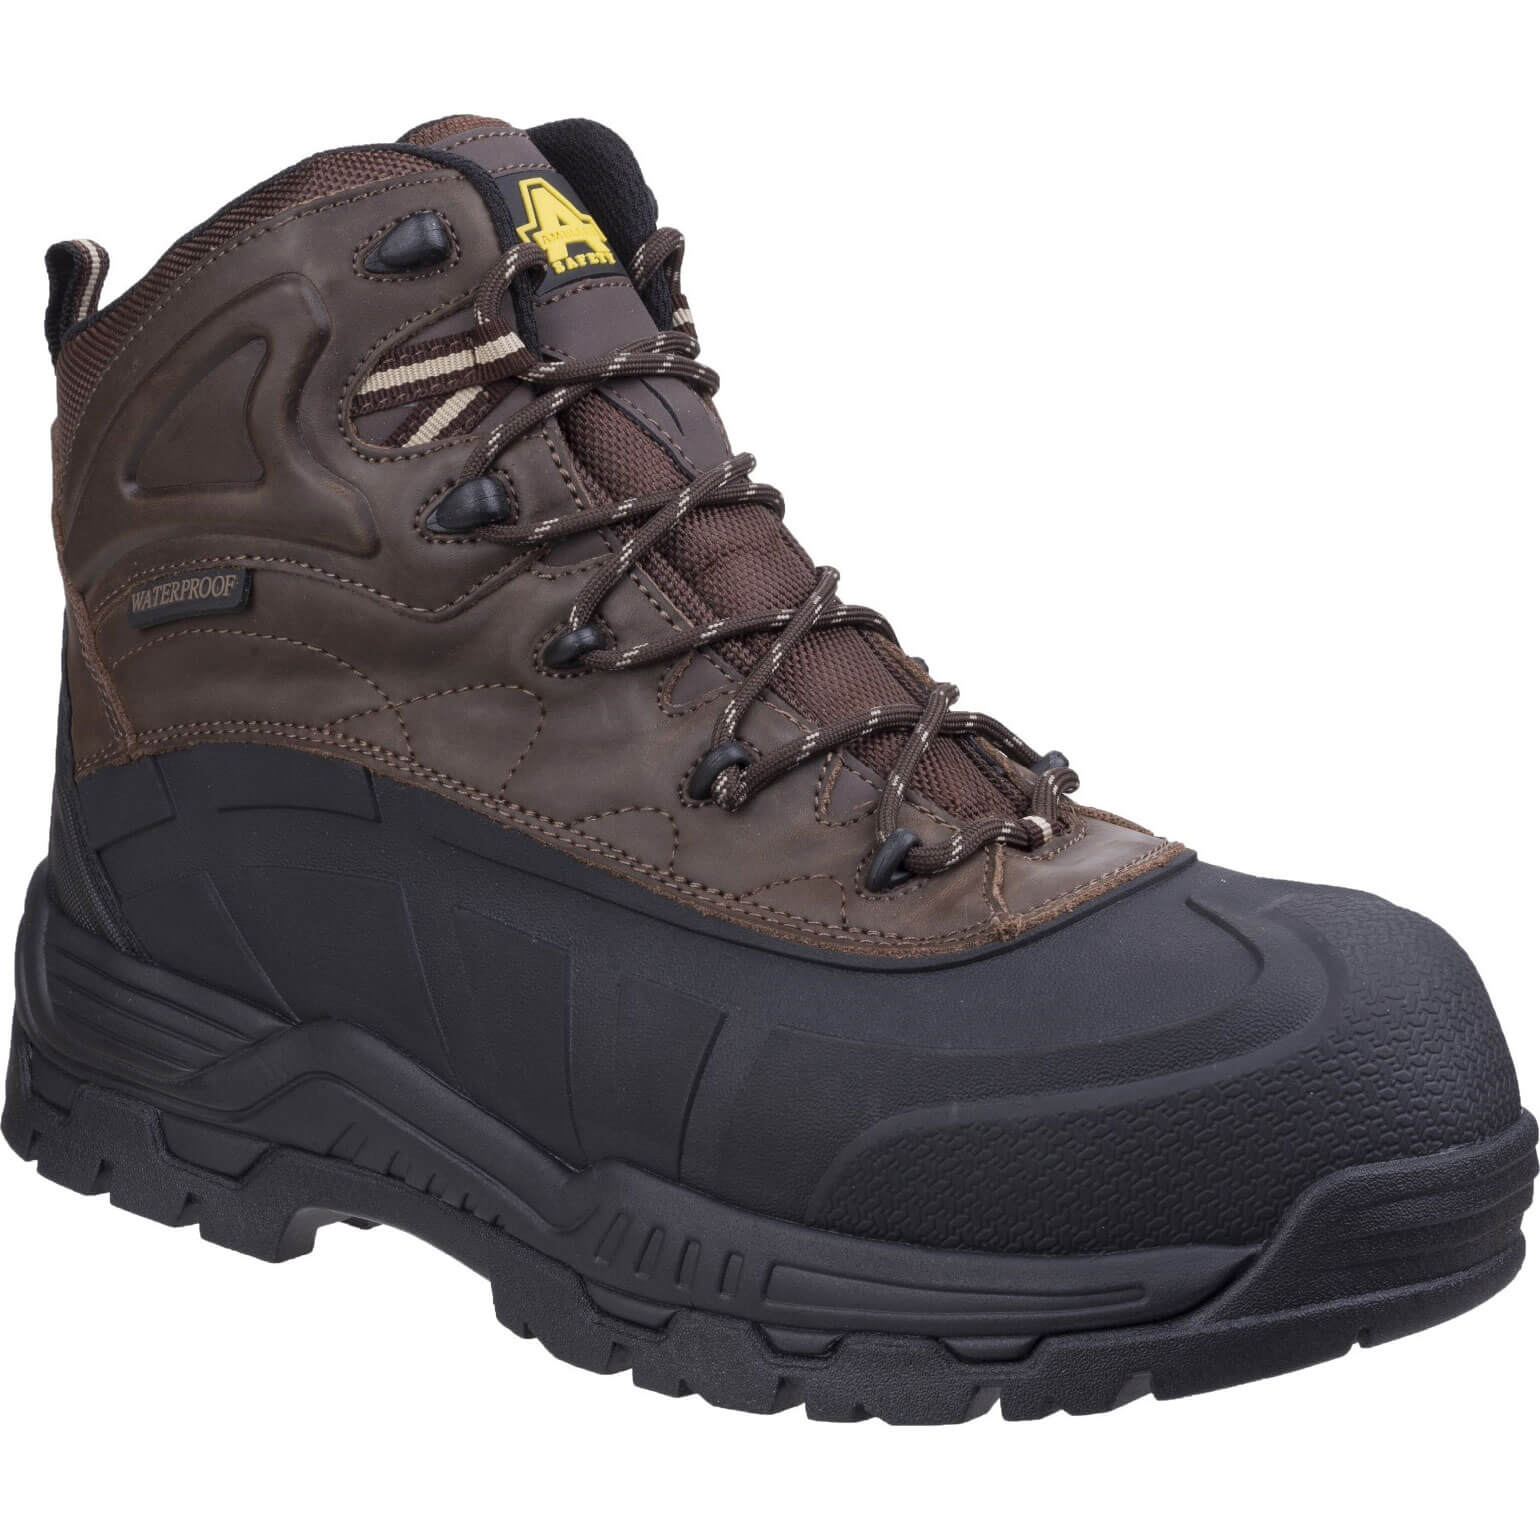 CHEAP Amblers Safety FS430 Orca Safety Boot Brown Size 10.5 – Men's Footwear